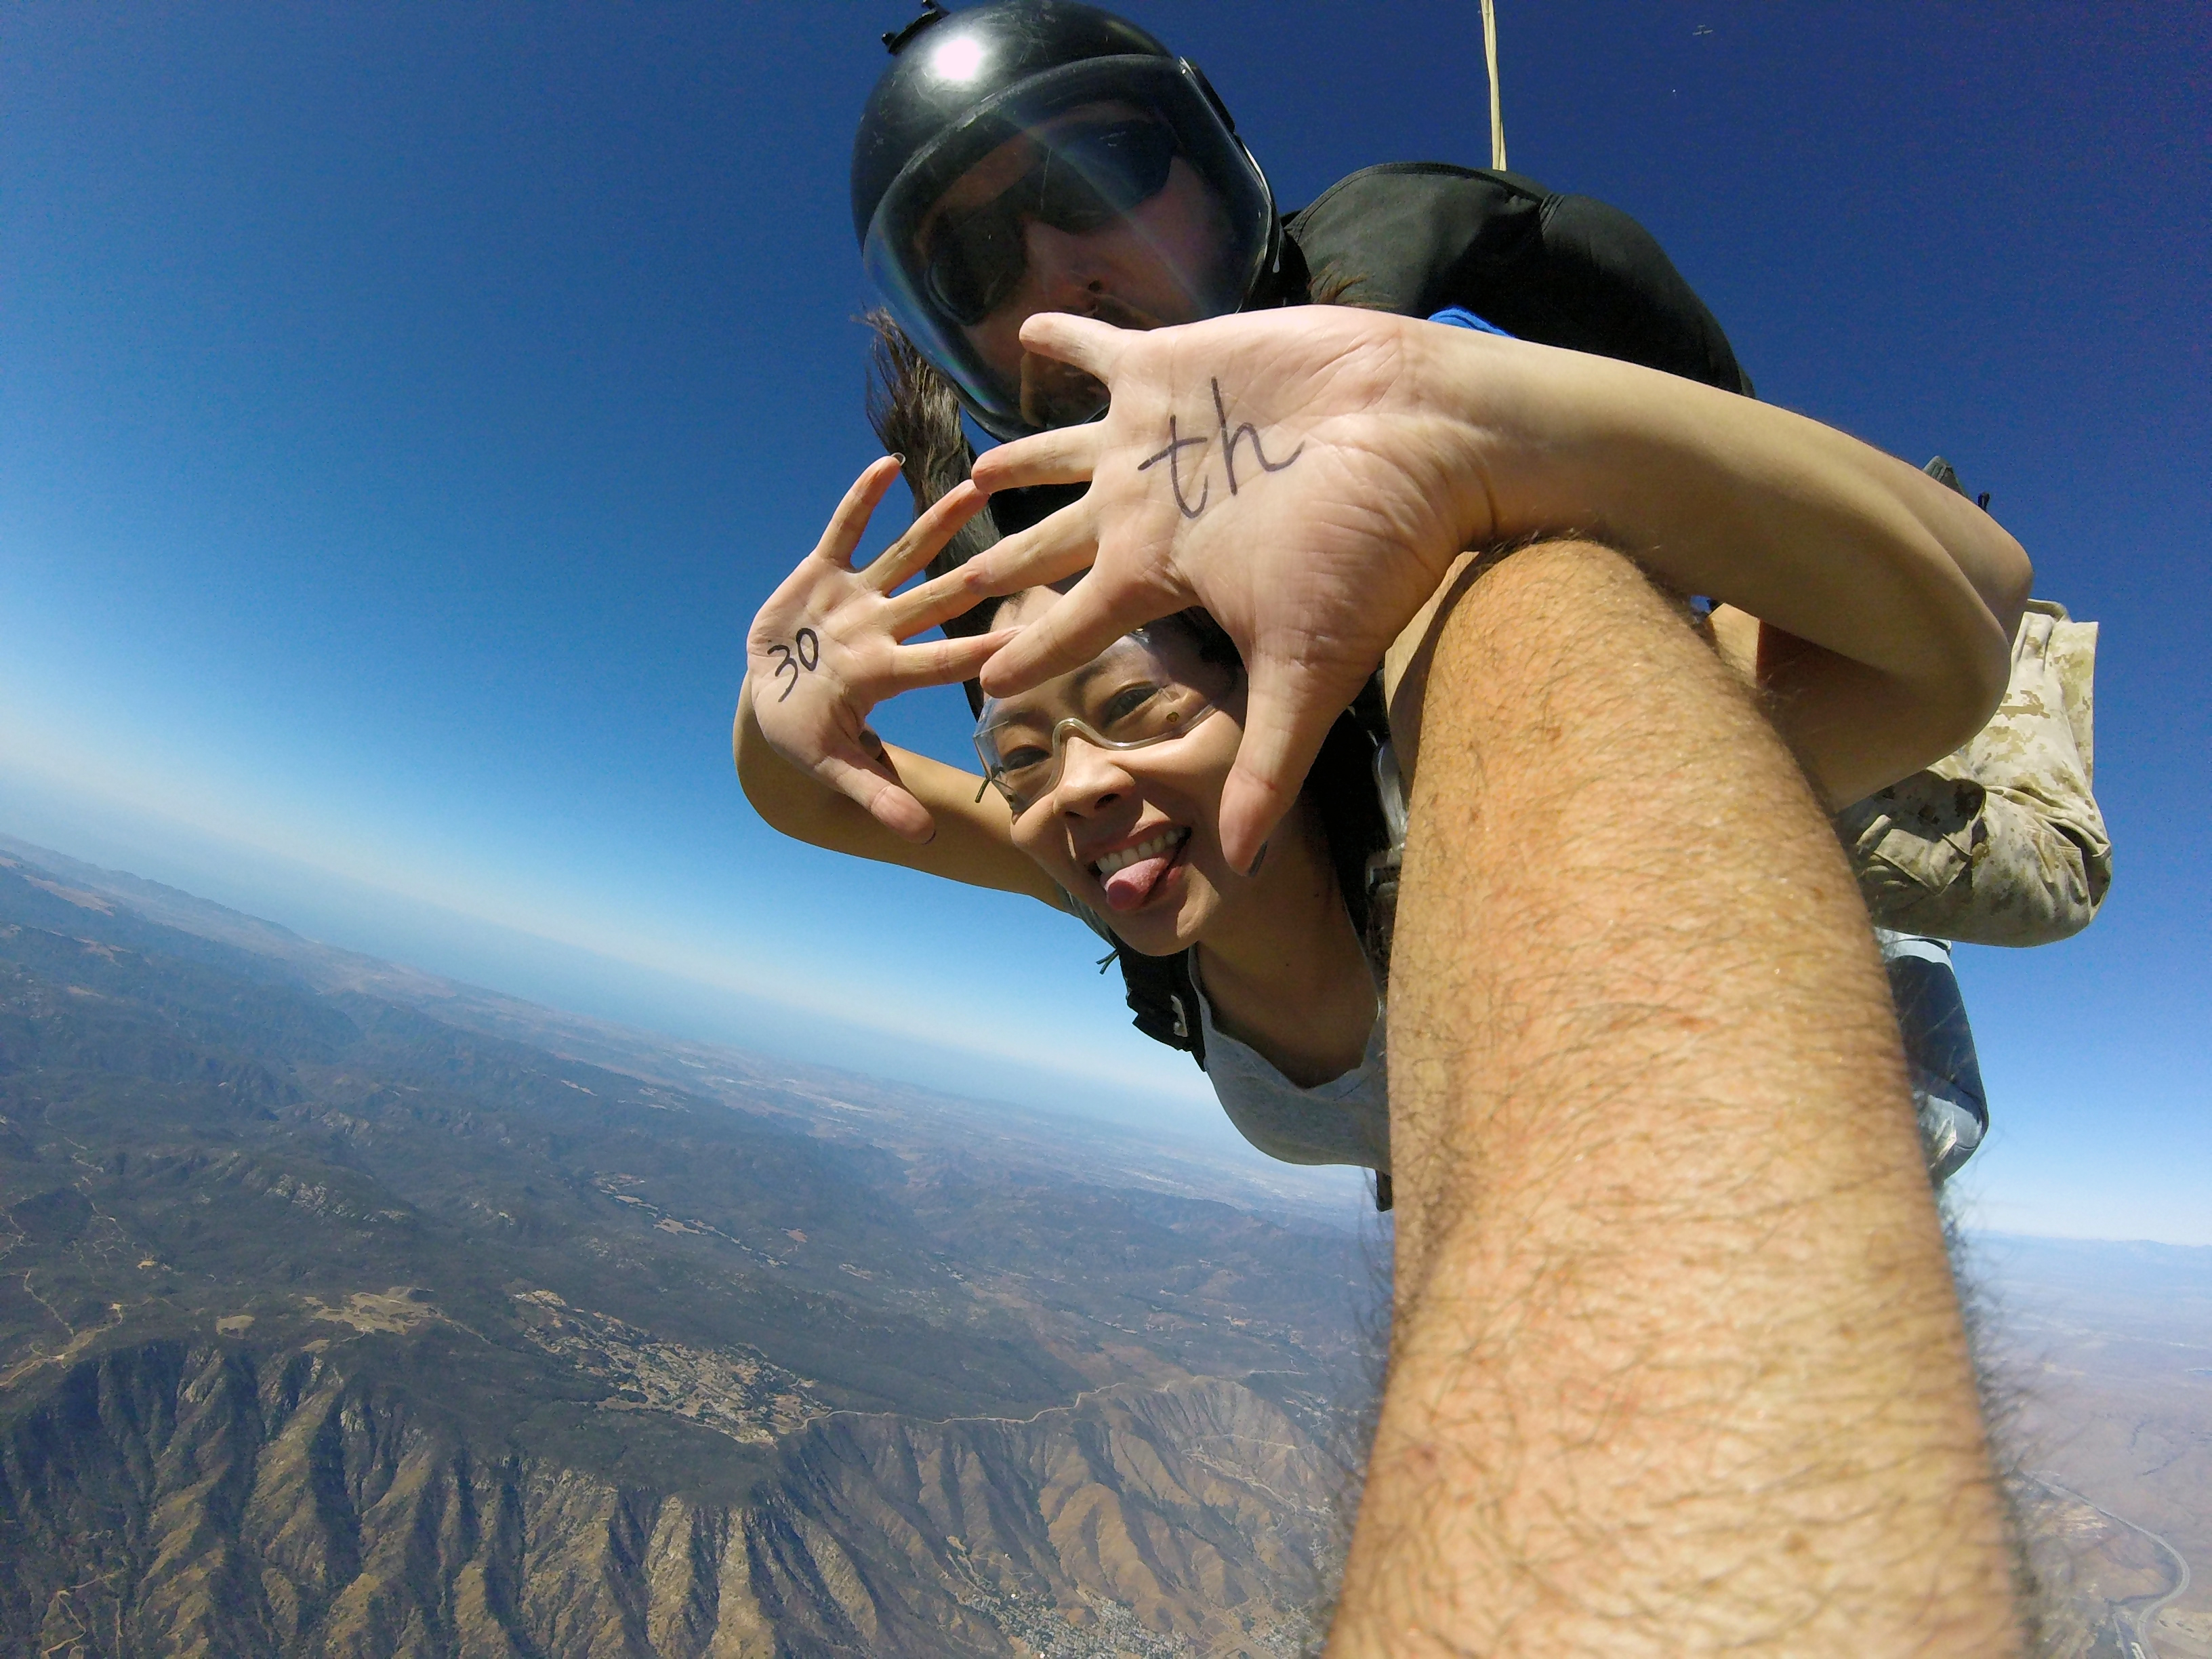 Skydive Near San Diego and Los Angeles, CA | Skydive Elsinore